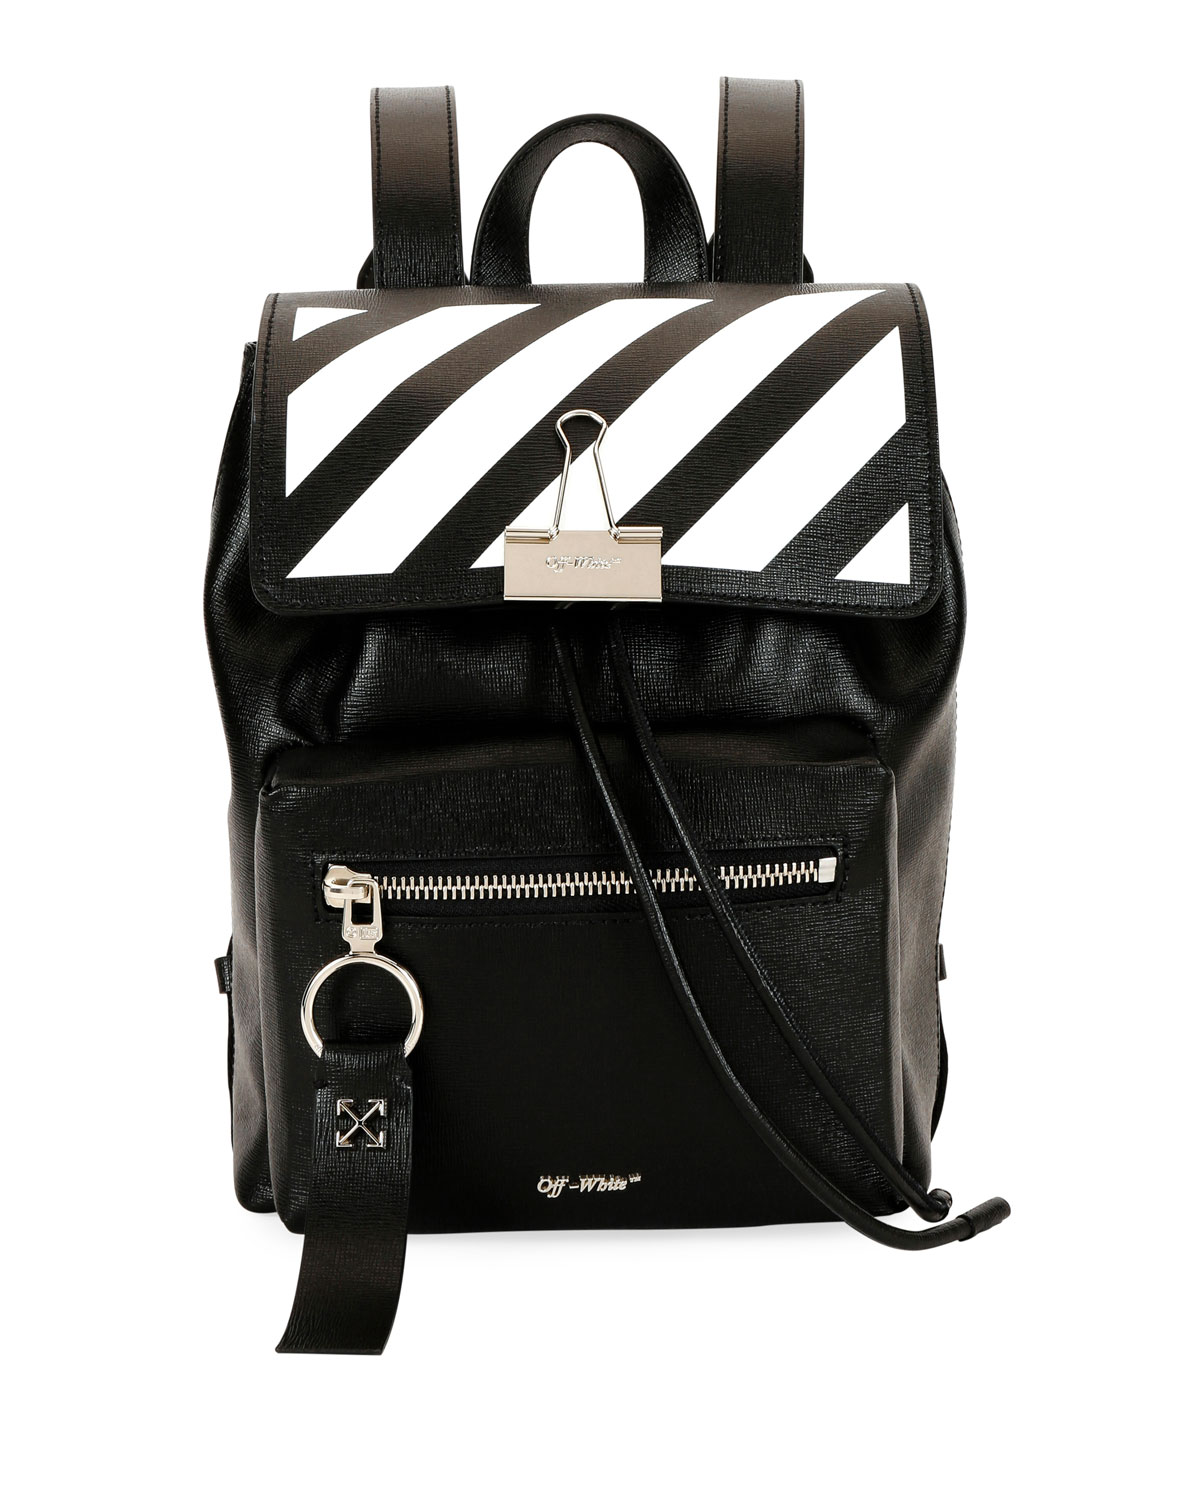 7f8dc027905 Off-White Diagonal Mini Leather Backpack   Neiman Marcus